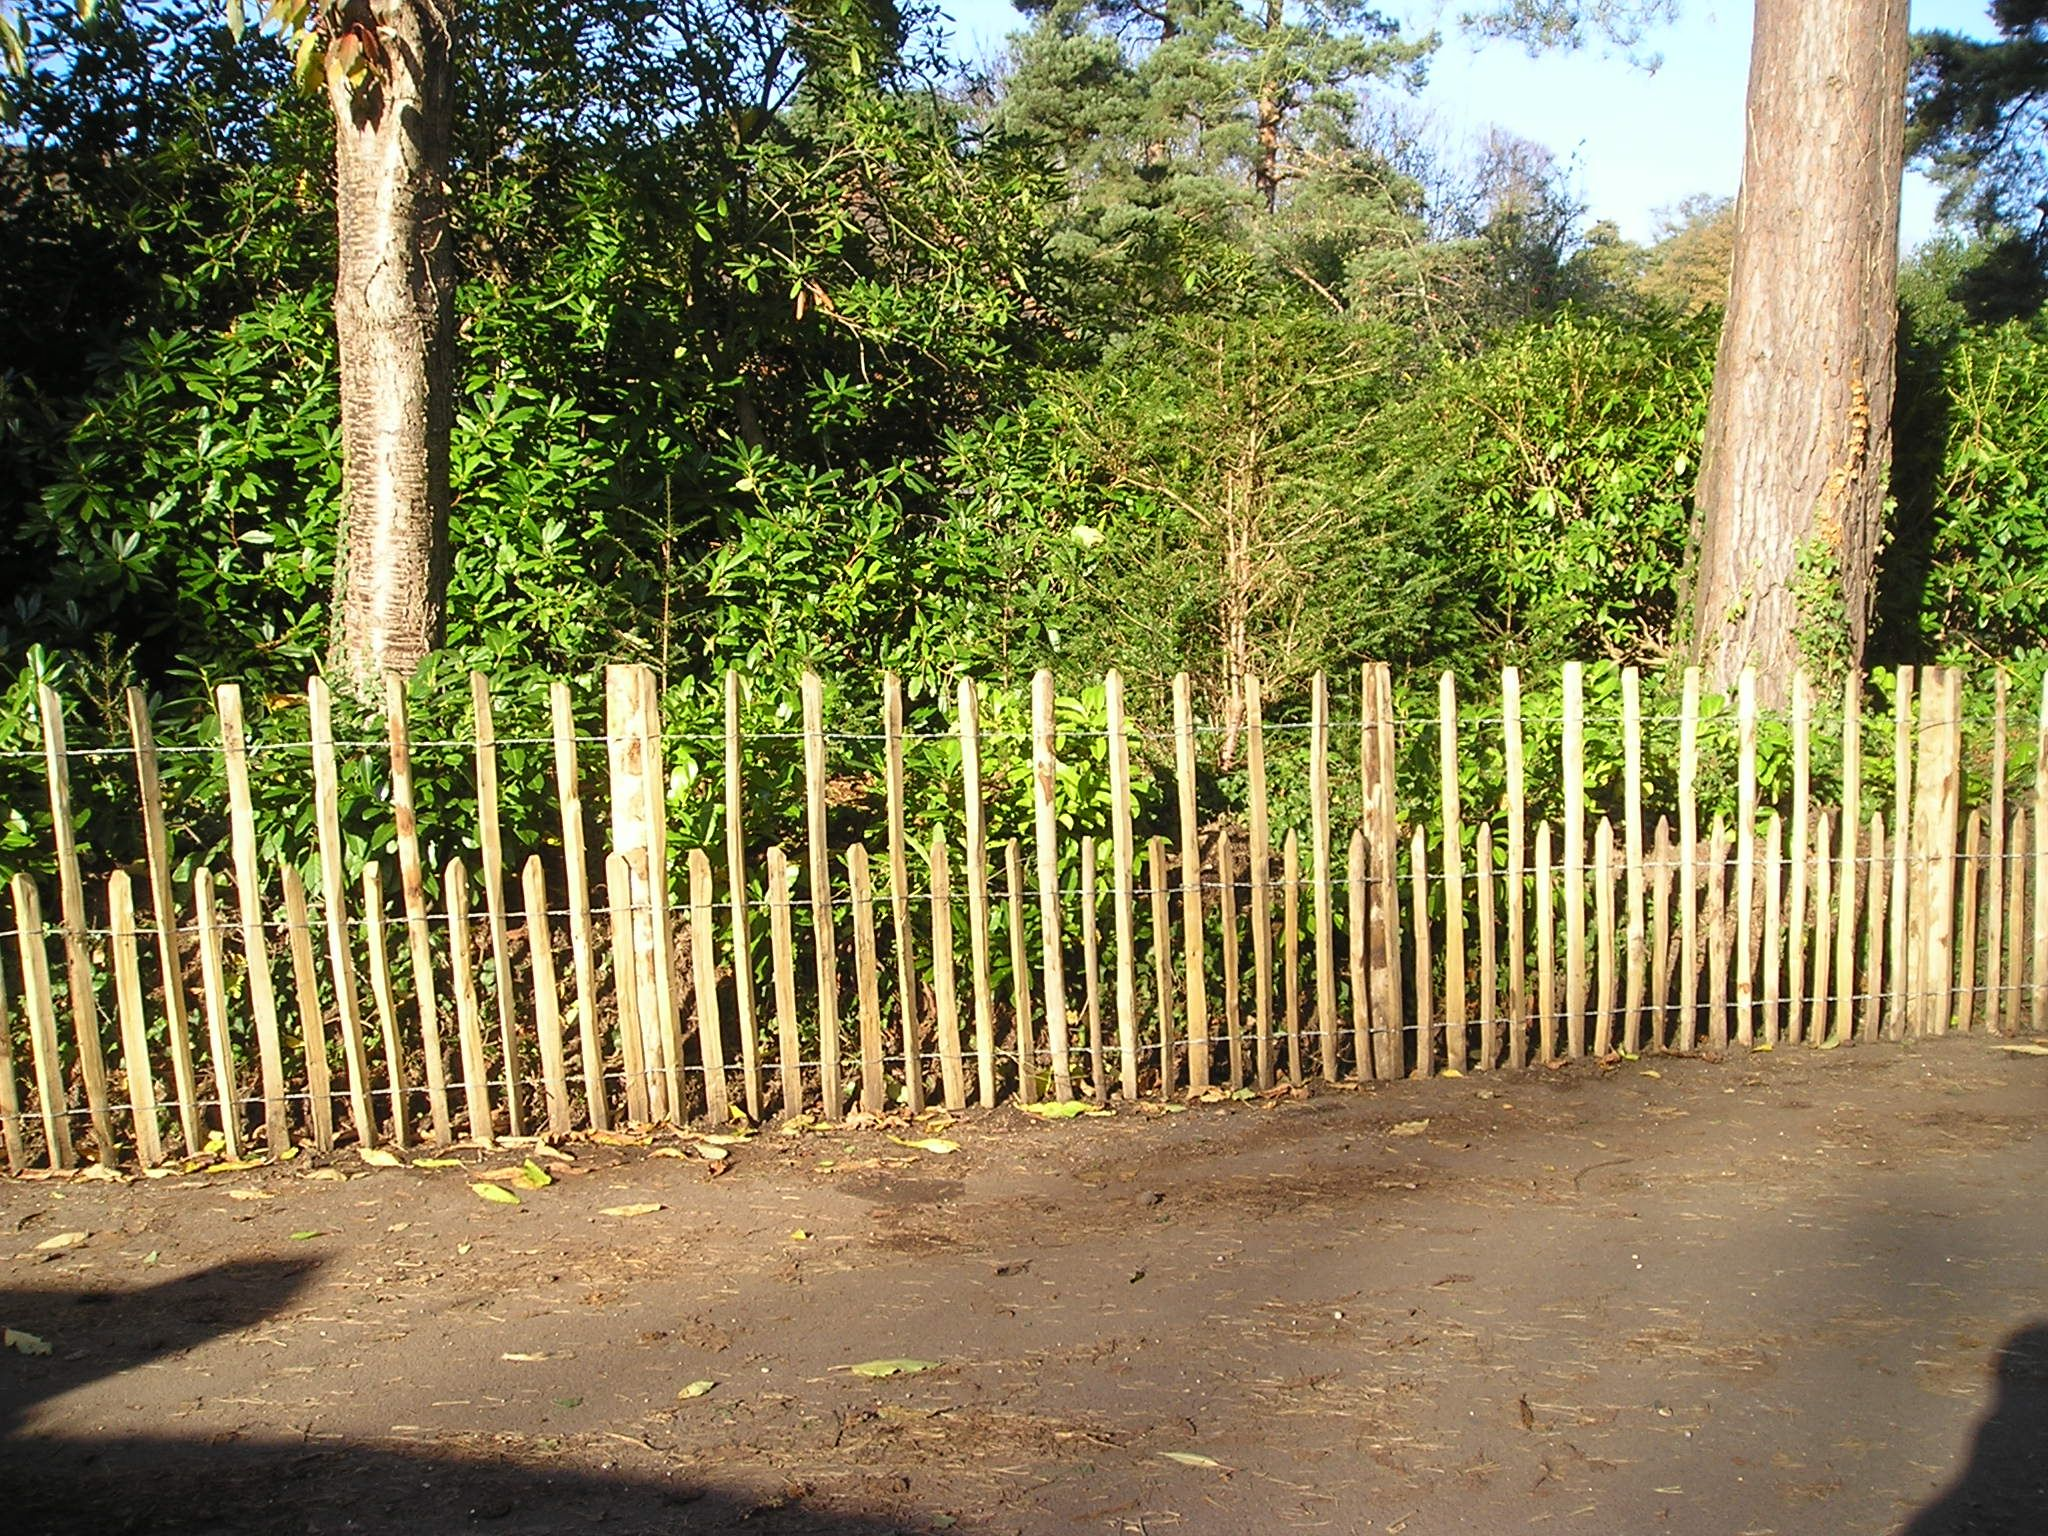 Some Quot Up And Down Quot Chestnut Fencing Or Quot Castellated